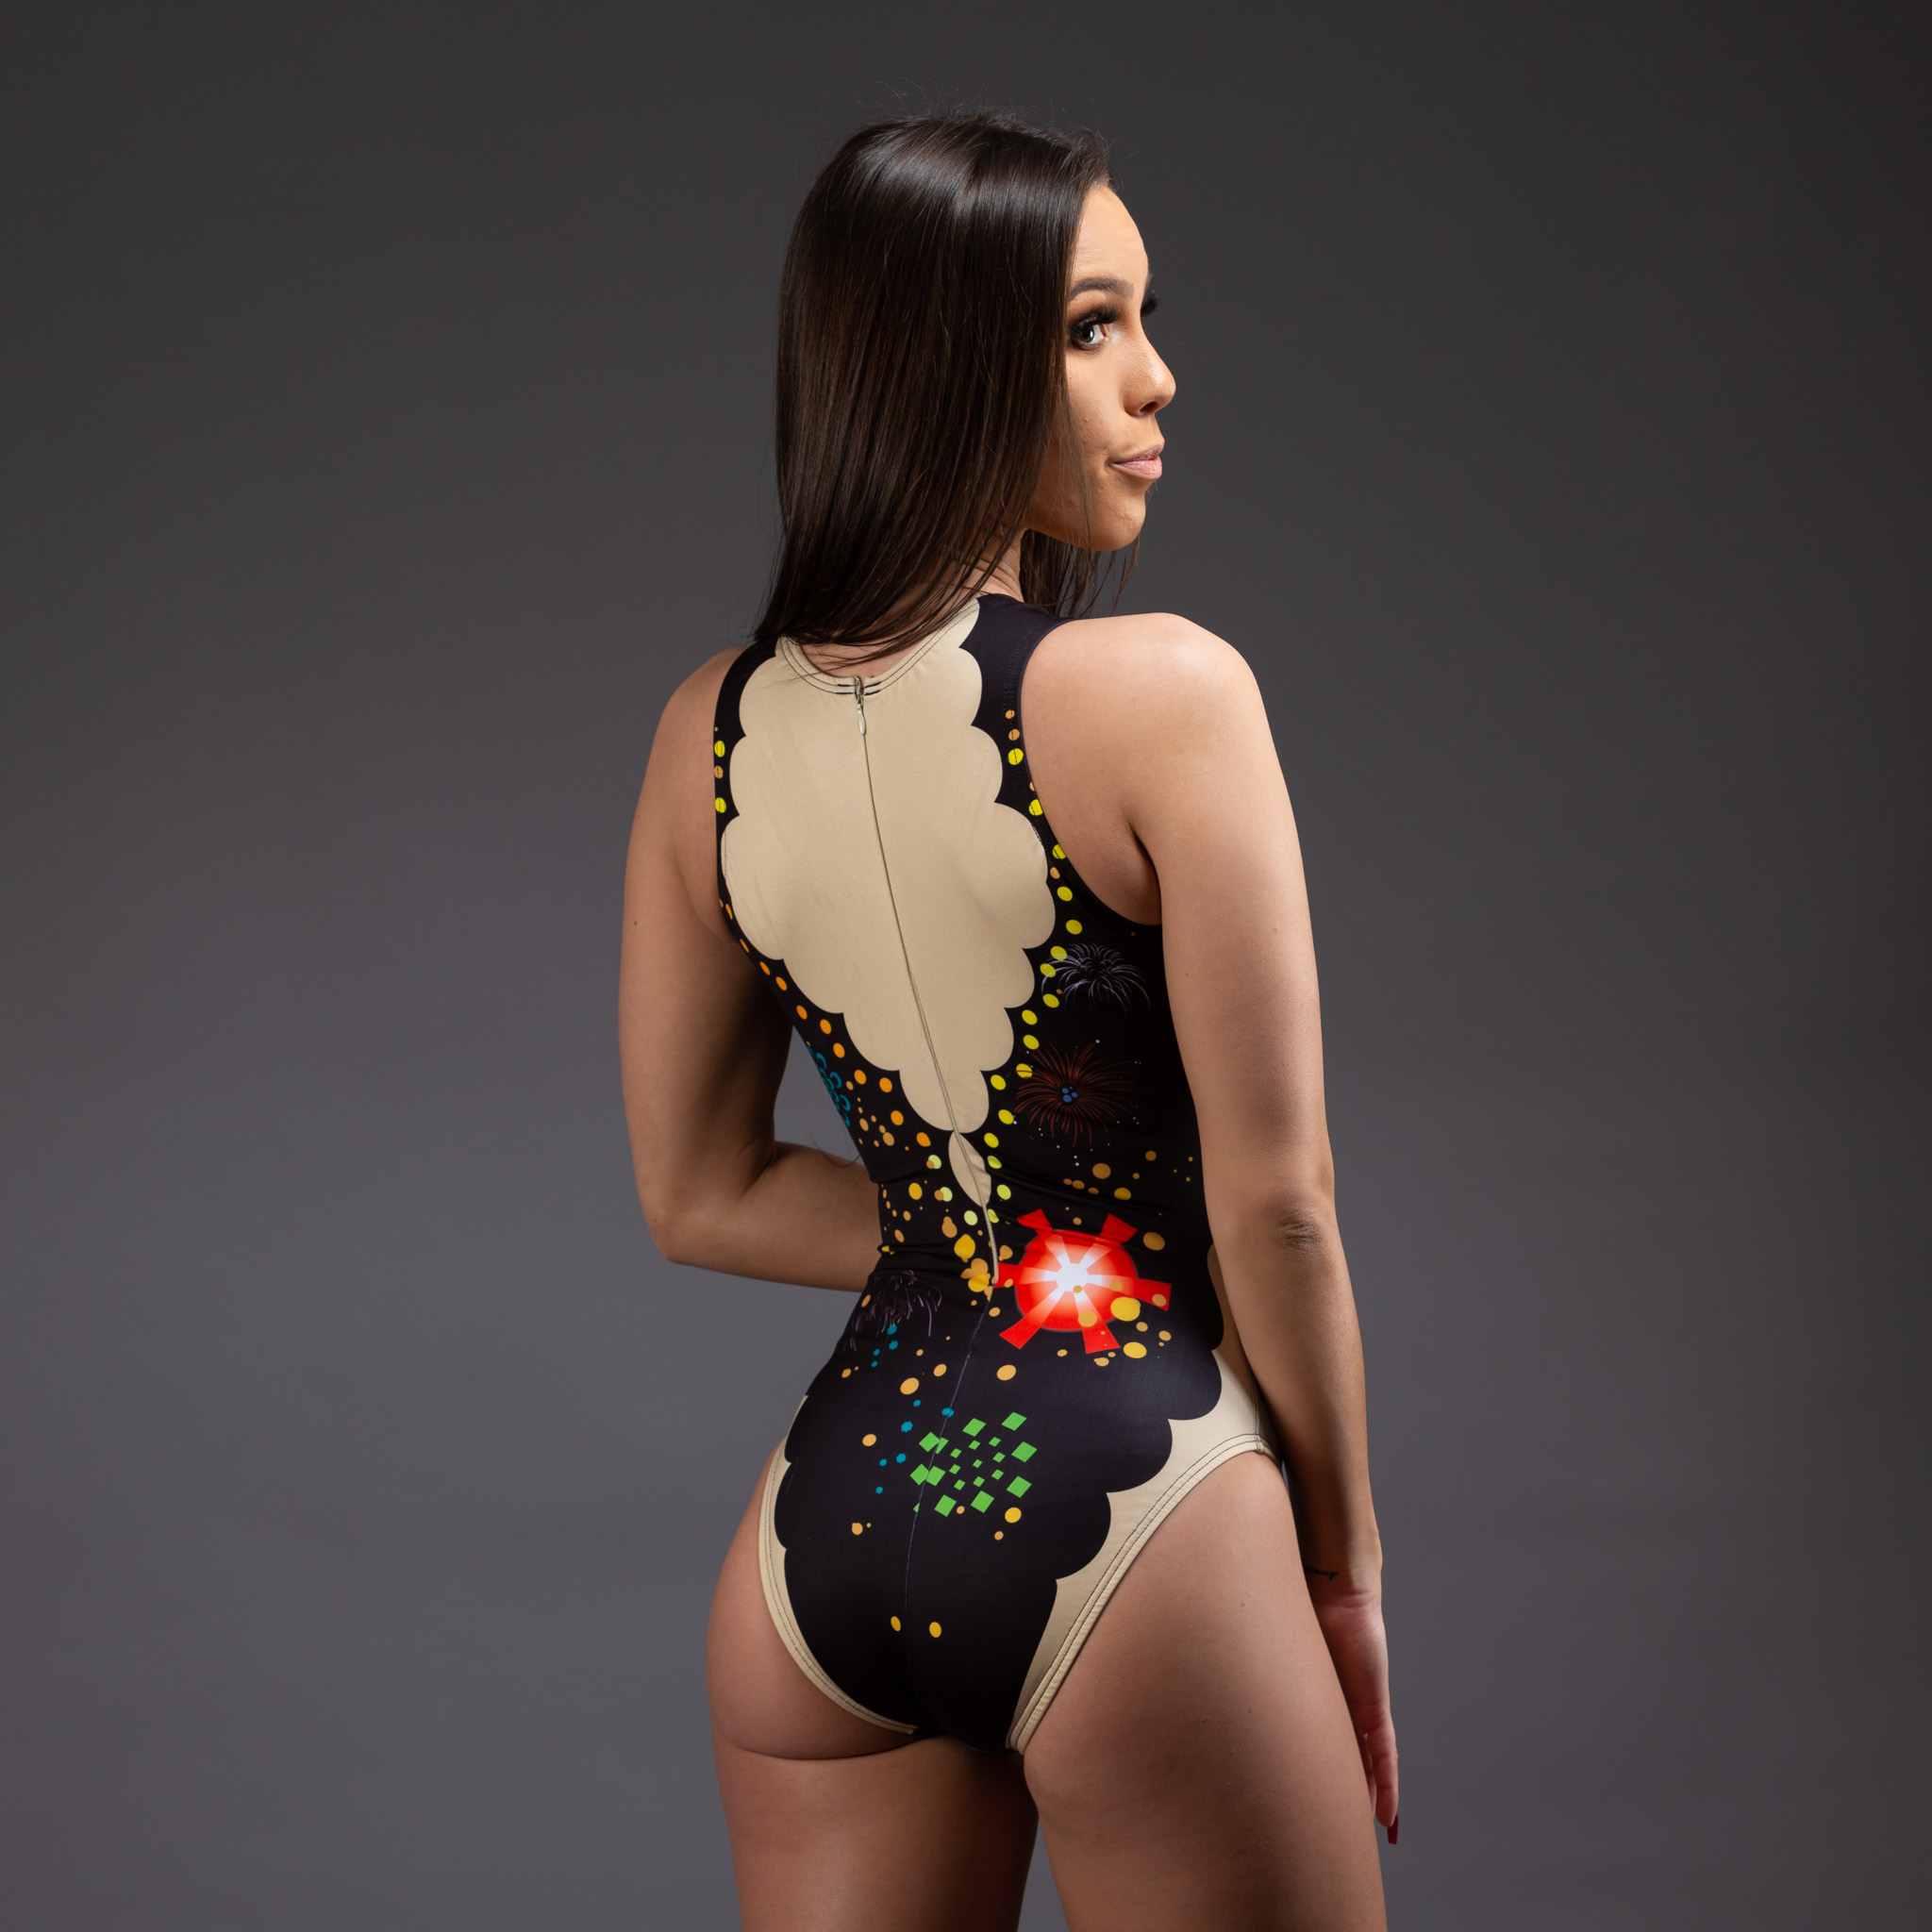 Fireworks synchro suit - artistic swimmi